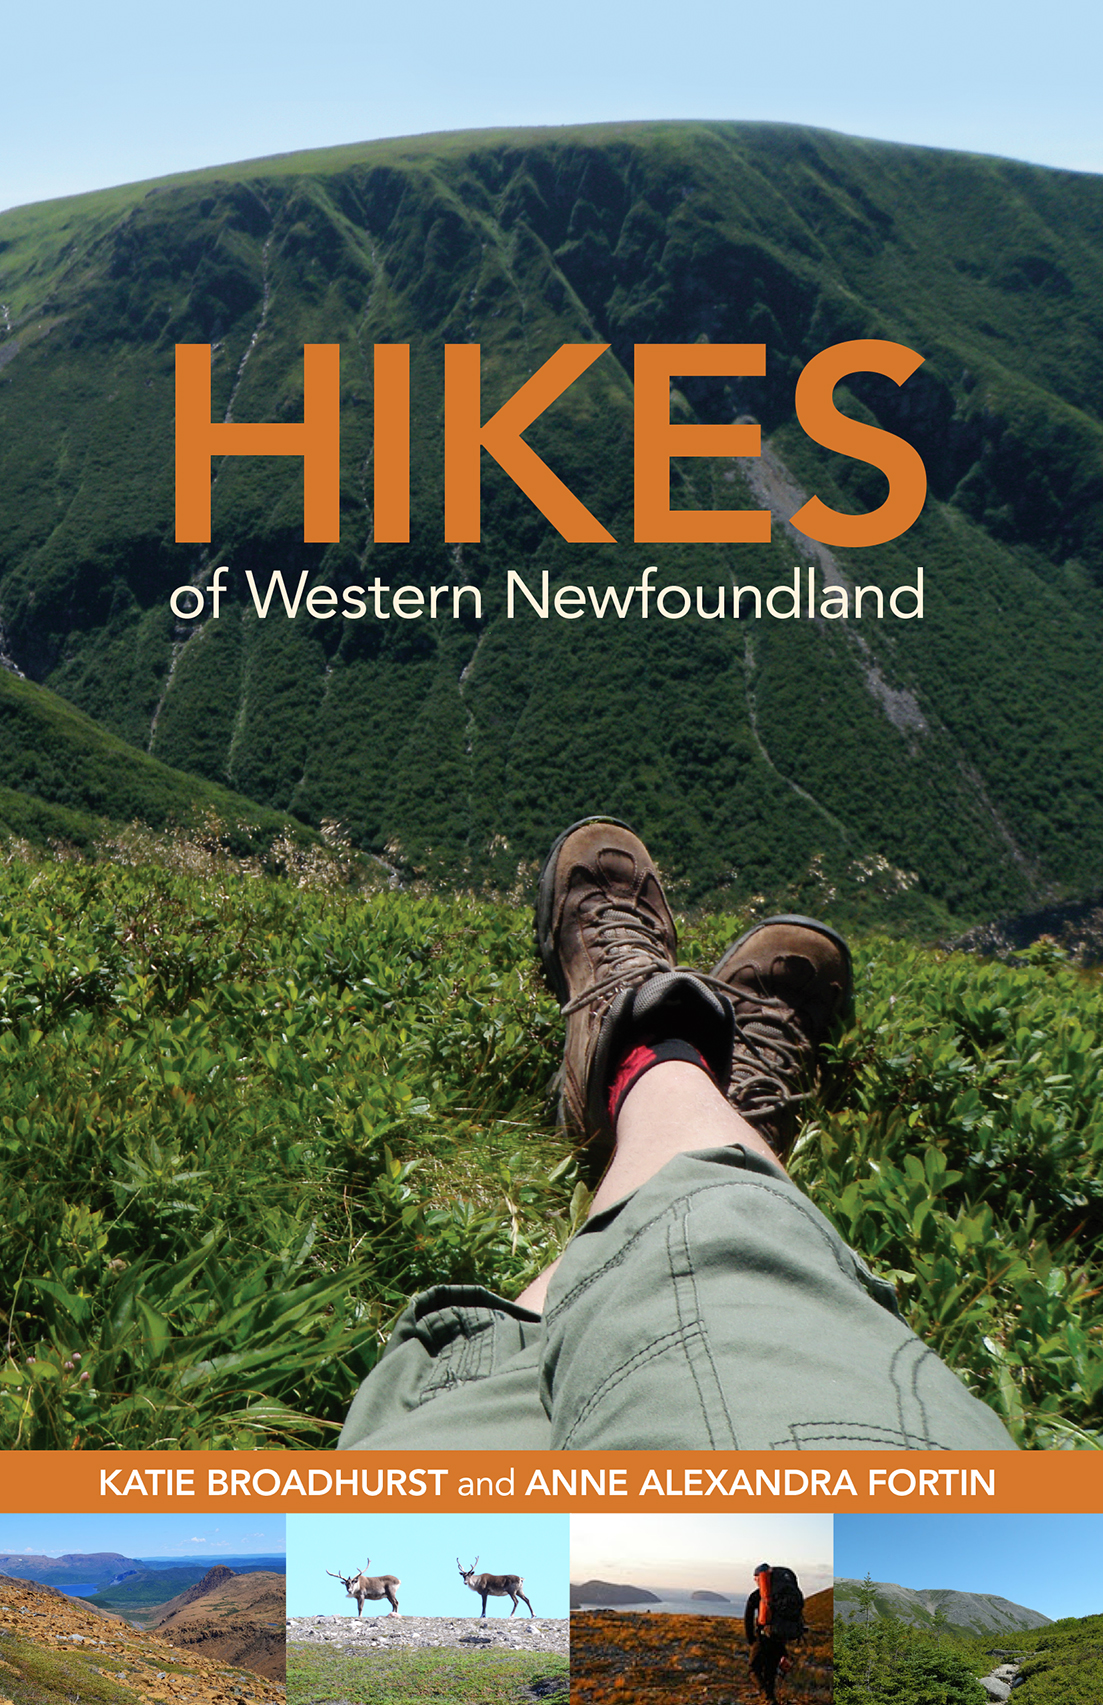 Hikes of Western Newfoundland